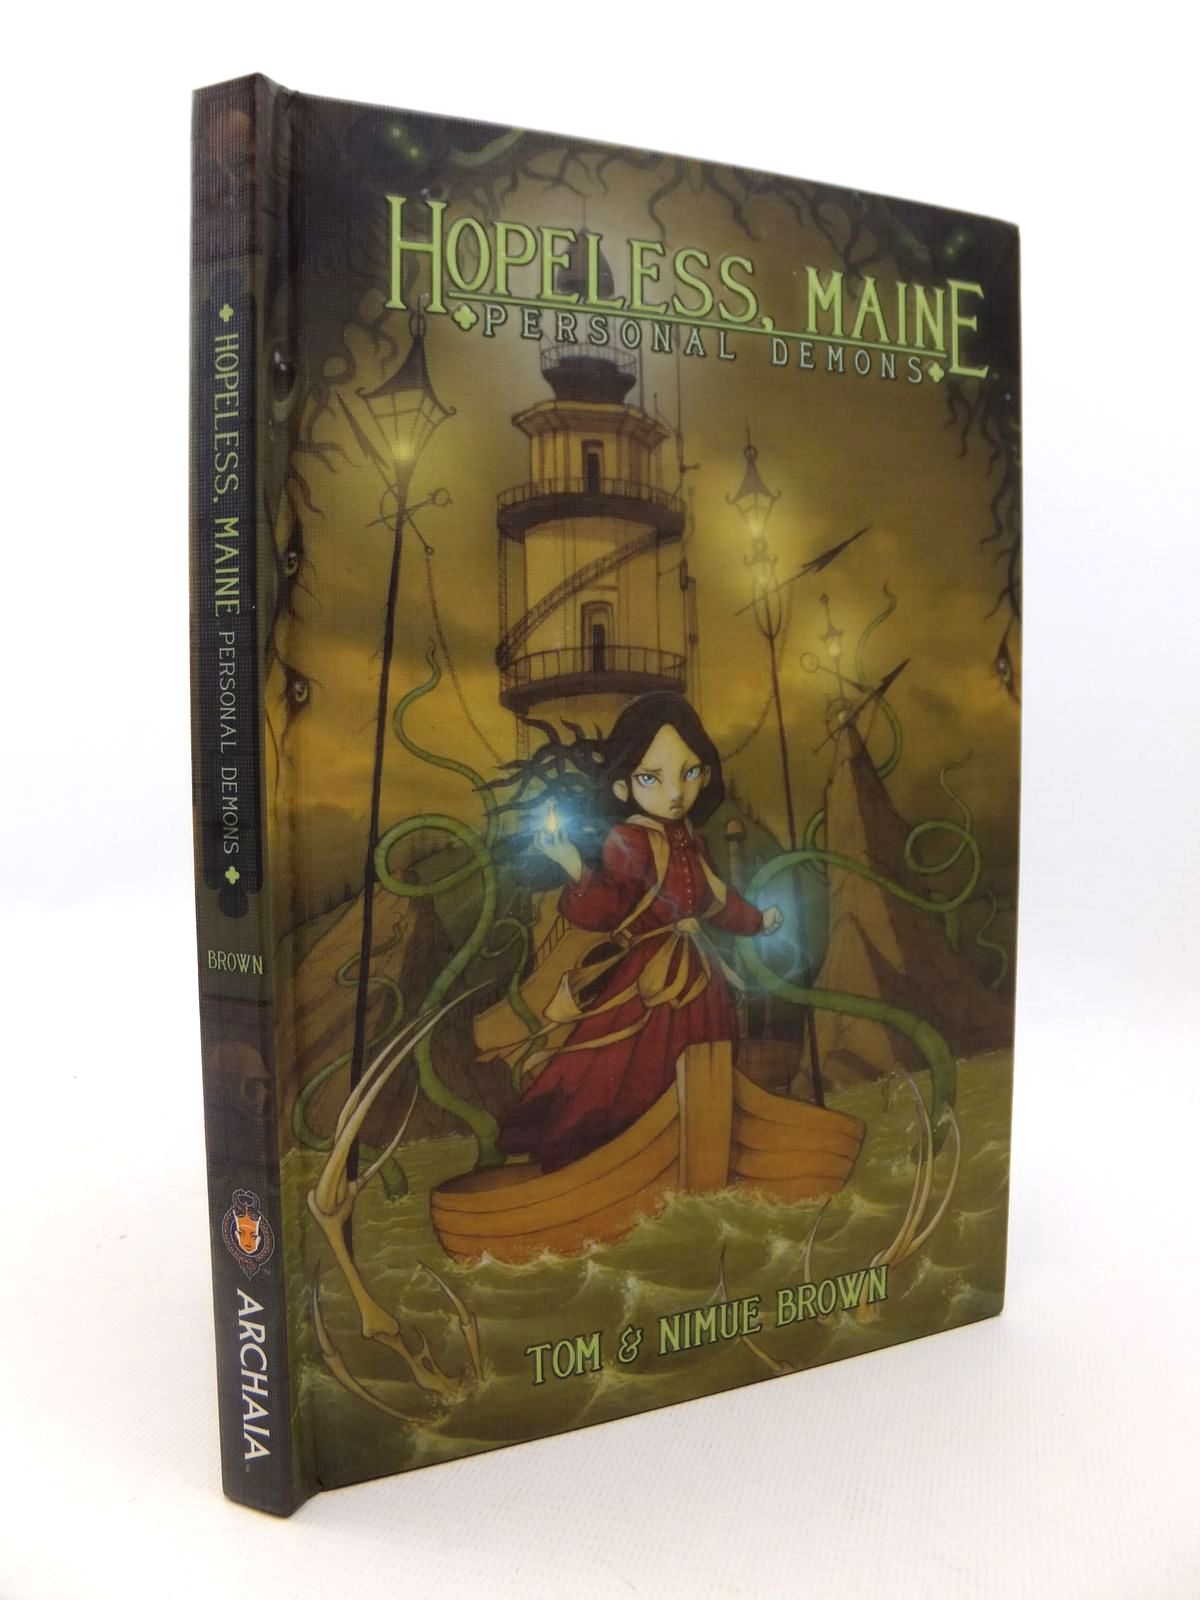 Photo of HOPELESS, MAINE: PERSONAL DEMONS written by Brown, Tom<br />Brown, Nimue illustrated by Browne, Tom published by Archaia (STOCK CODE: 1812844)  for sale by Stella & Rose's Books